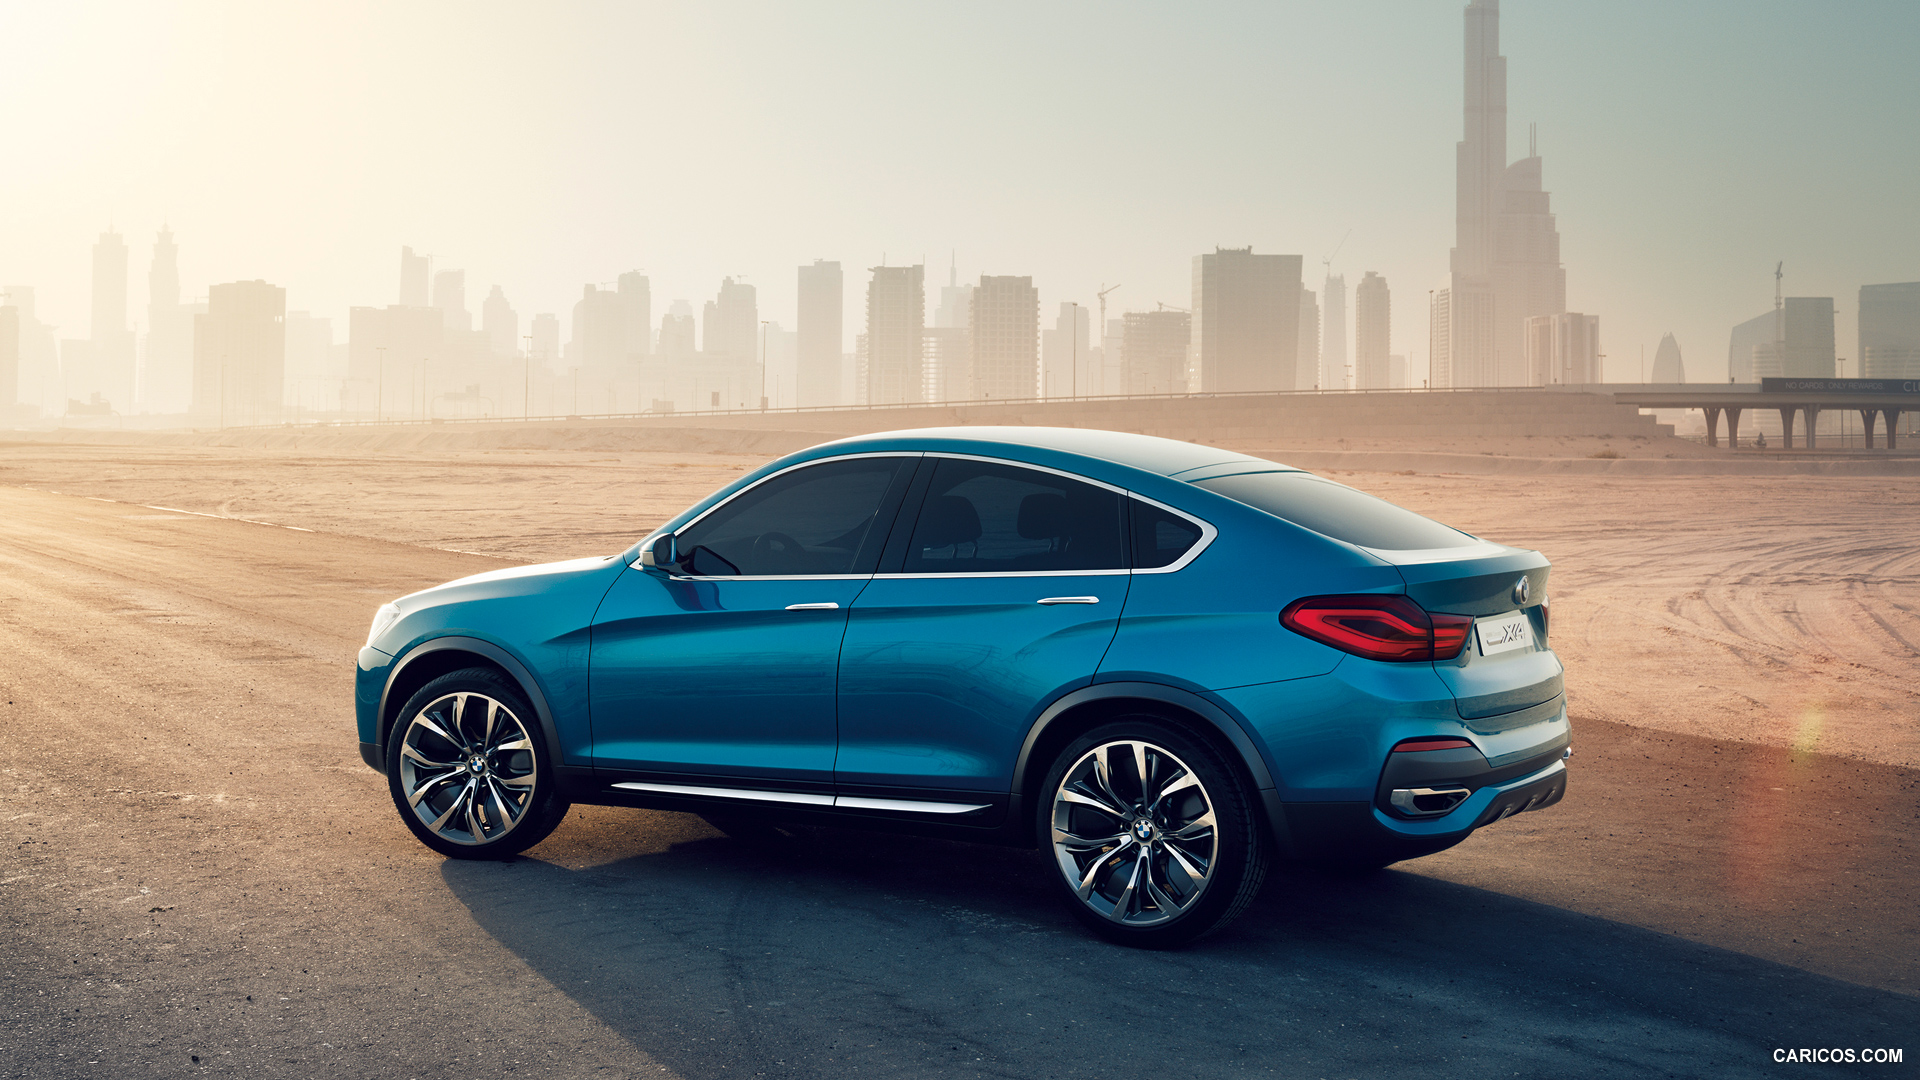 1920x1080 - BMW X4 Wallpapers 7